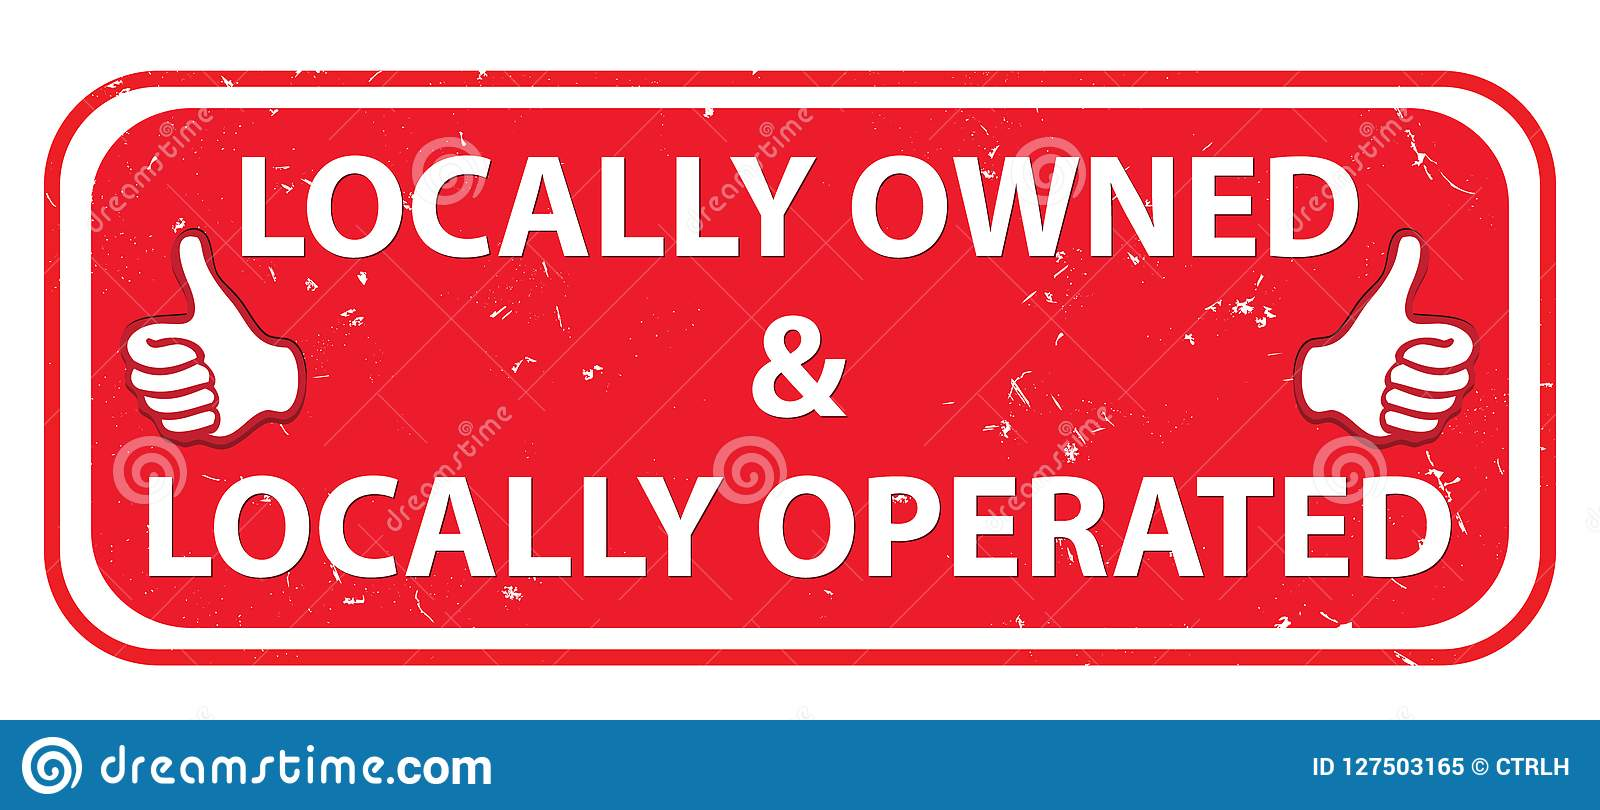 Locally Owned, Locally Operated - Red Label For Print Stock